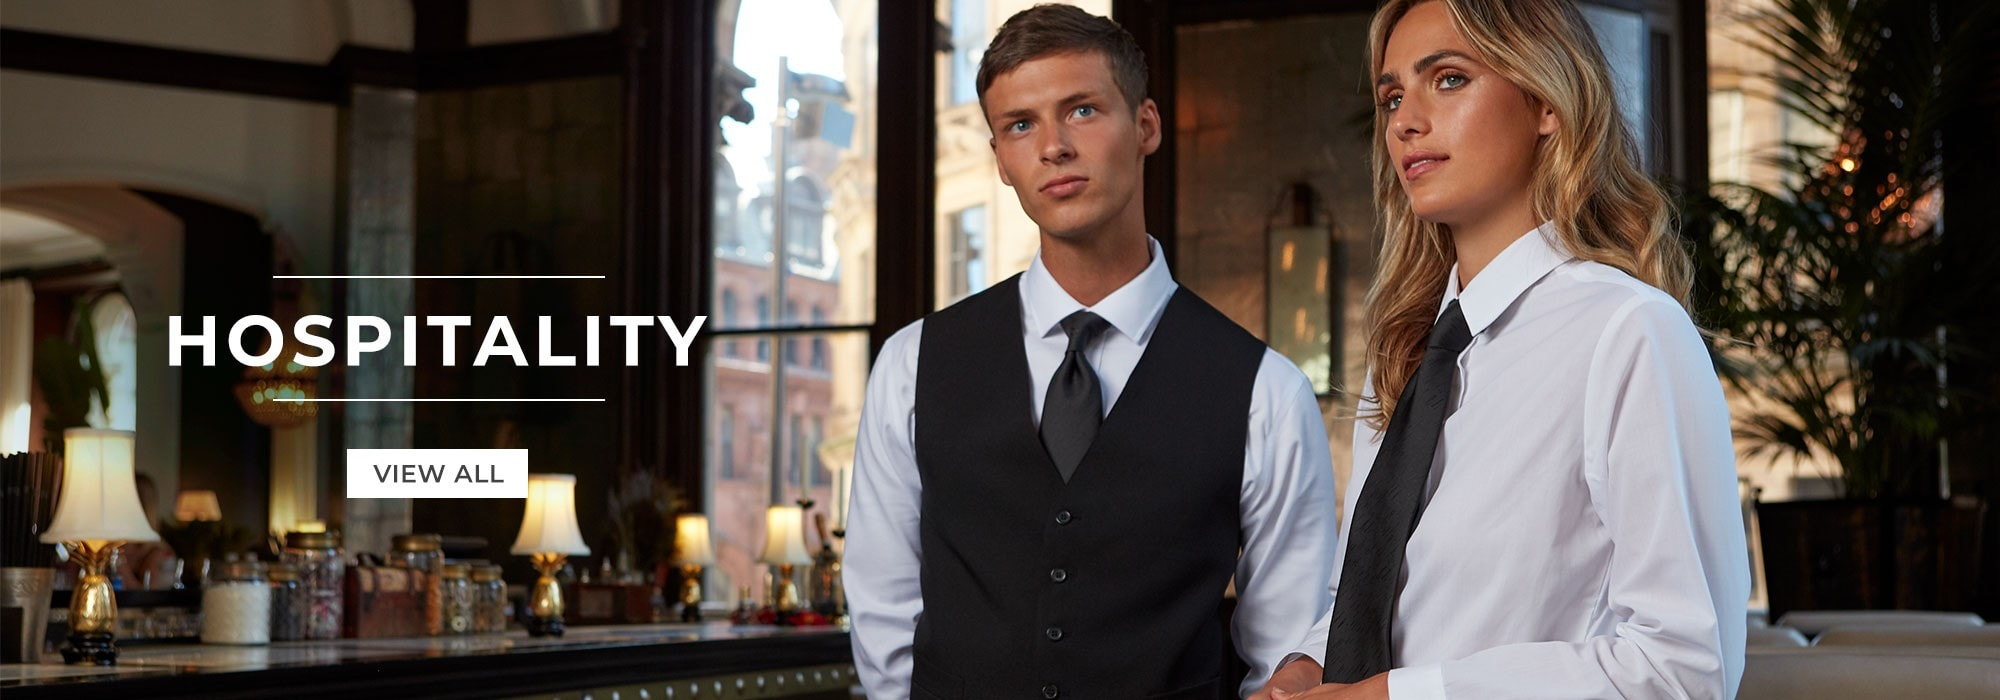 9f3be43c734 Personalised Hospitality Uniforms